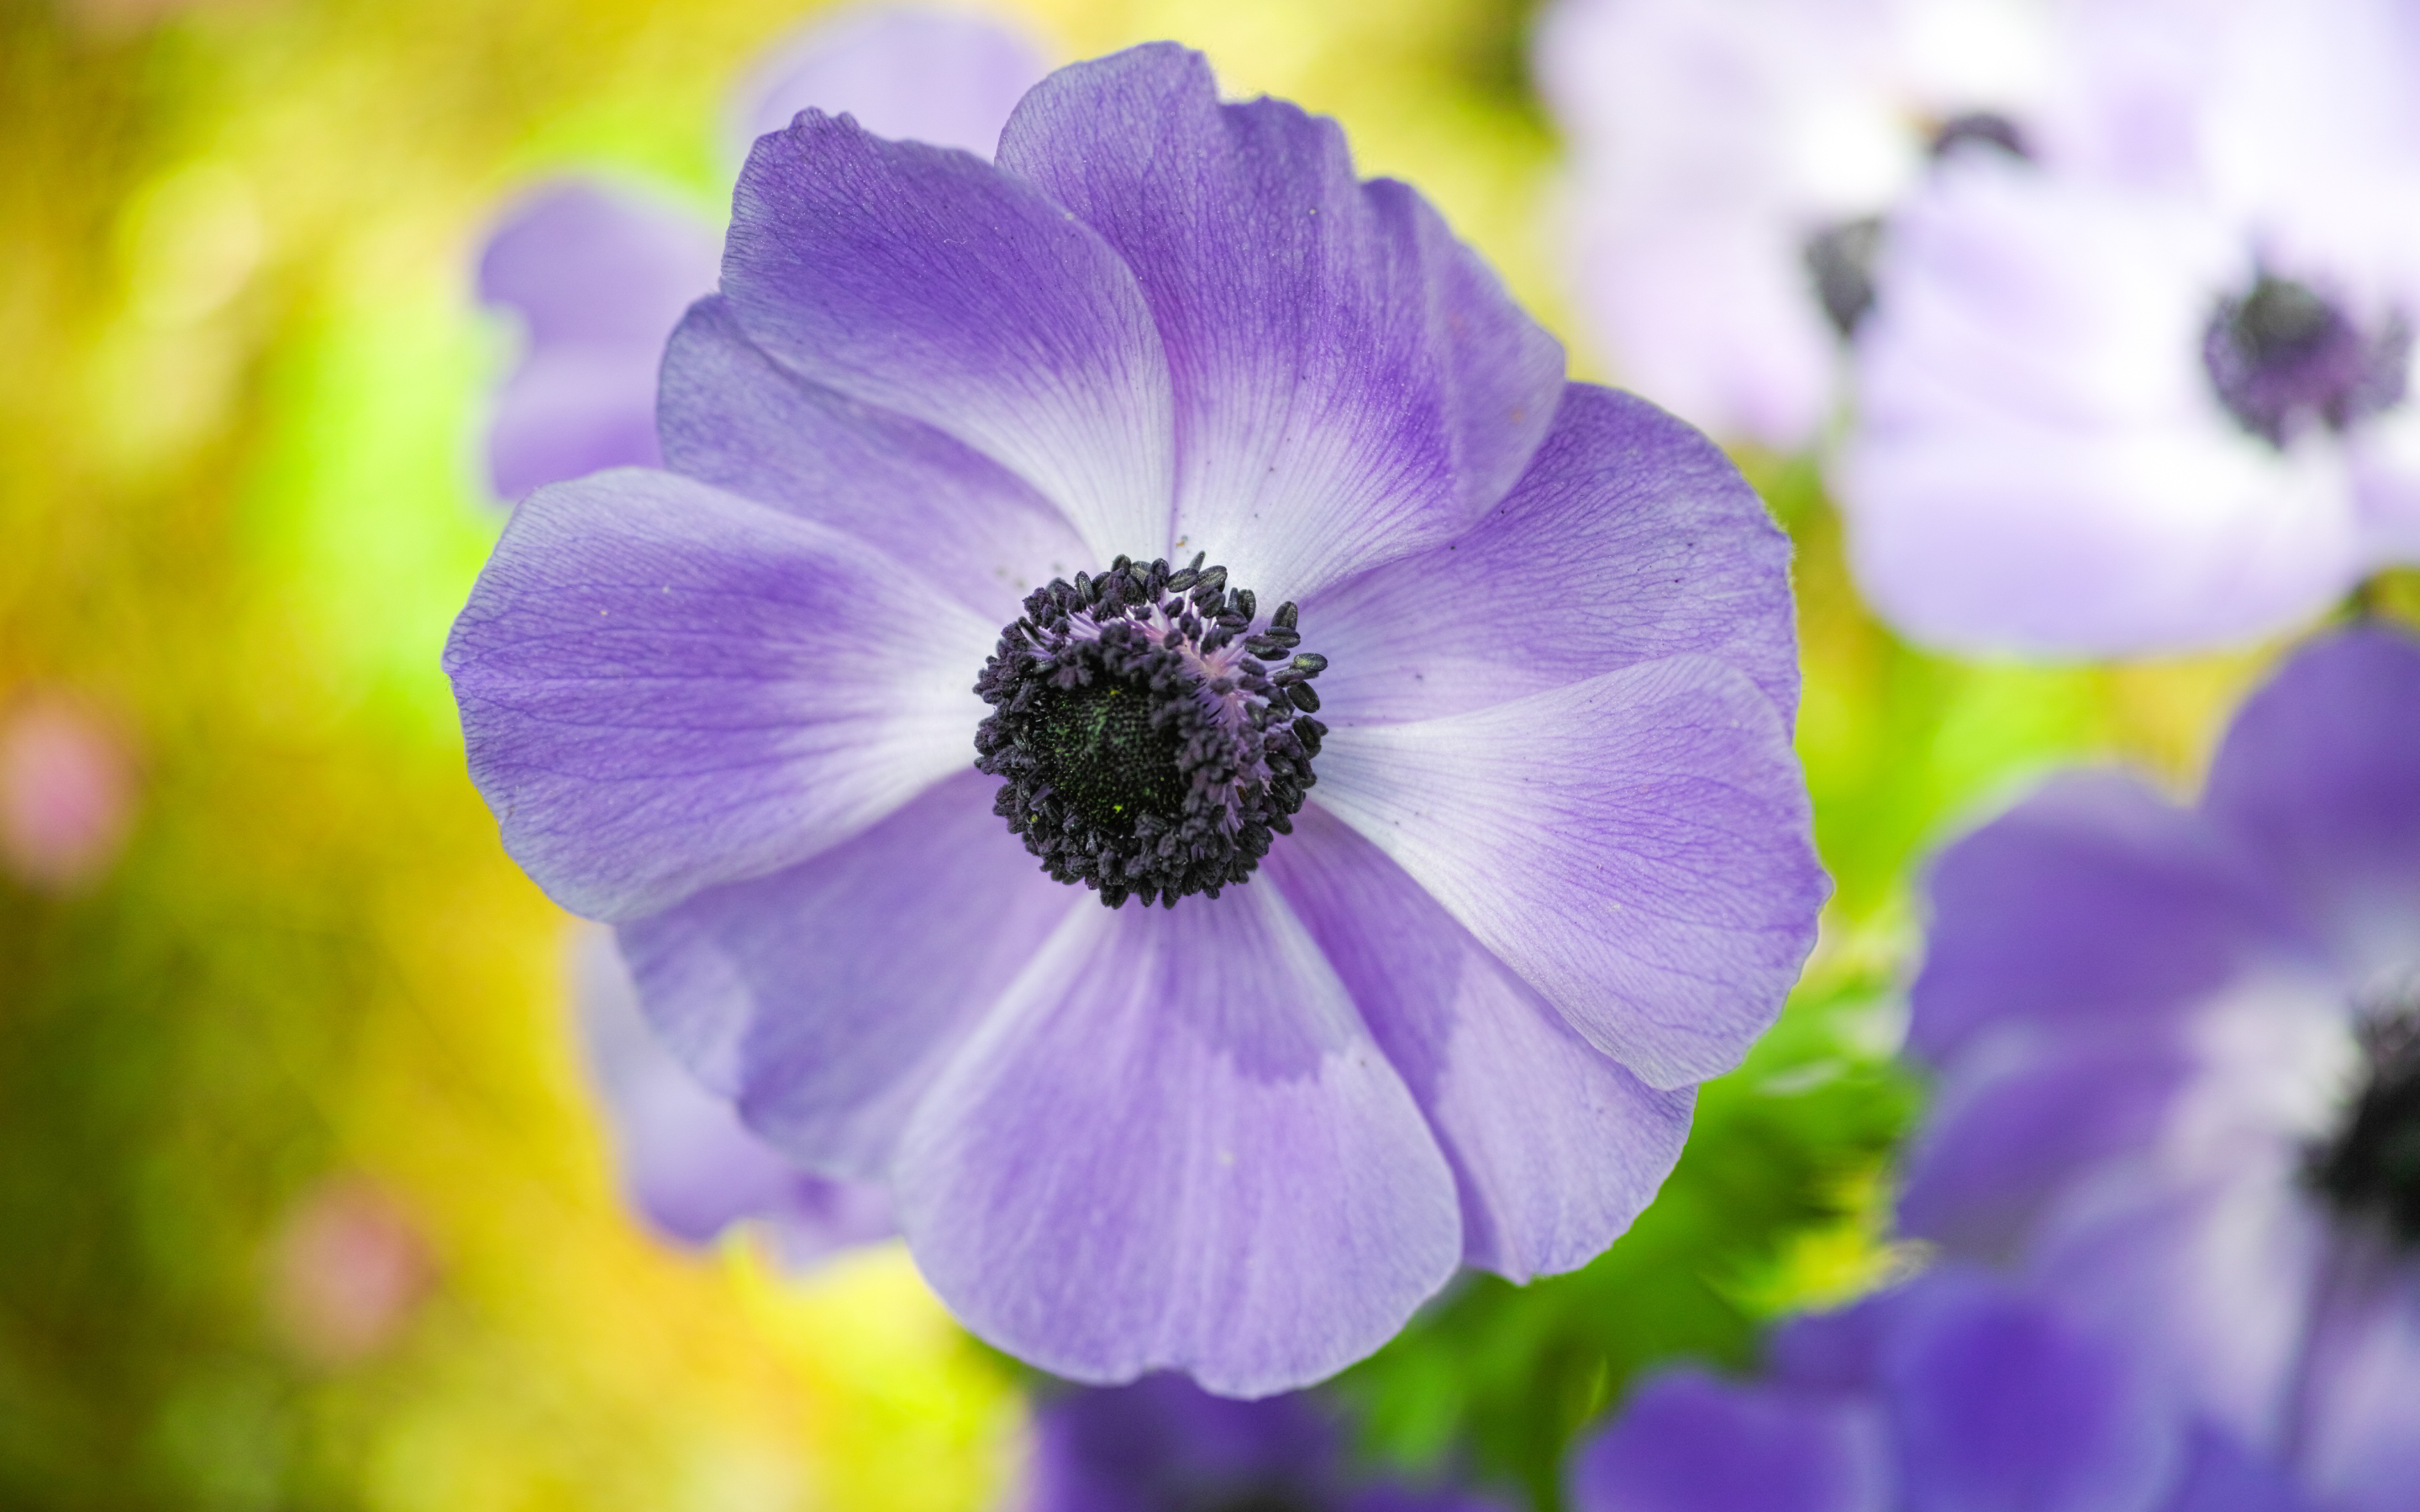 lilac colored flower